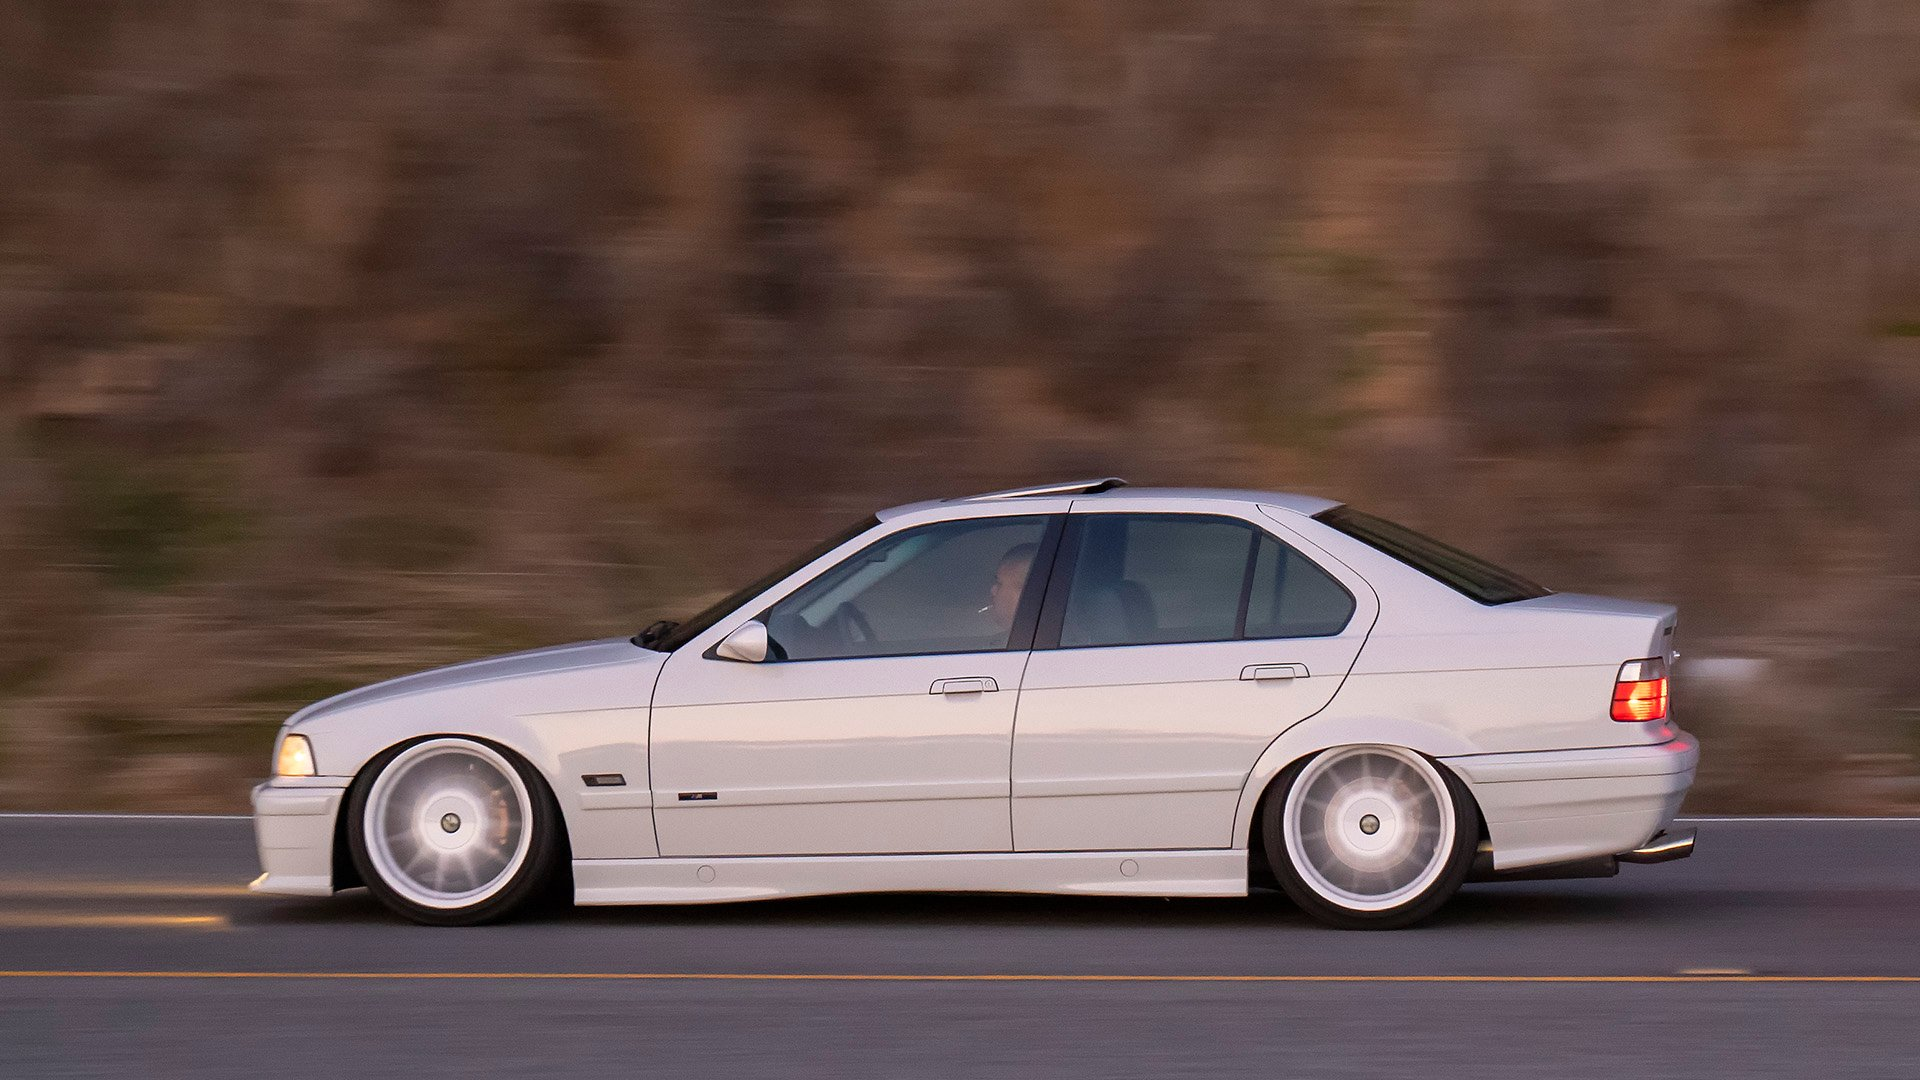 What Dreams Are Made Of - Alpine White BMW E36 328i Sedan